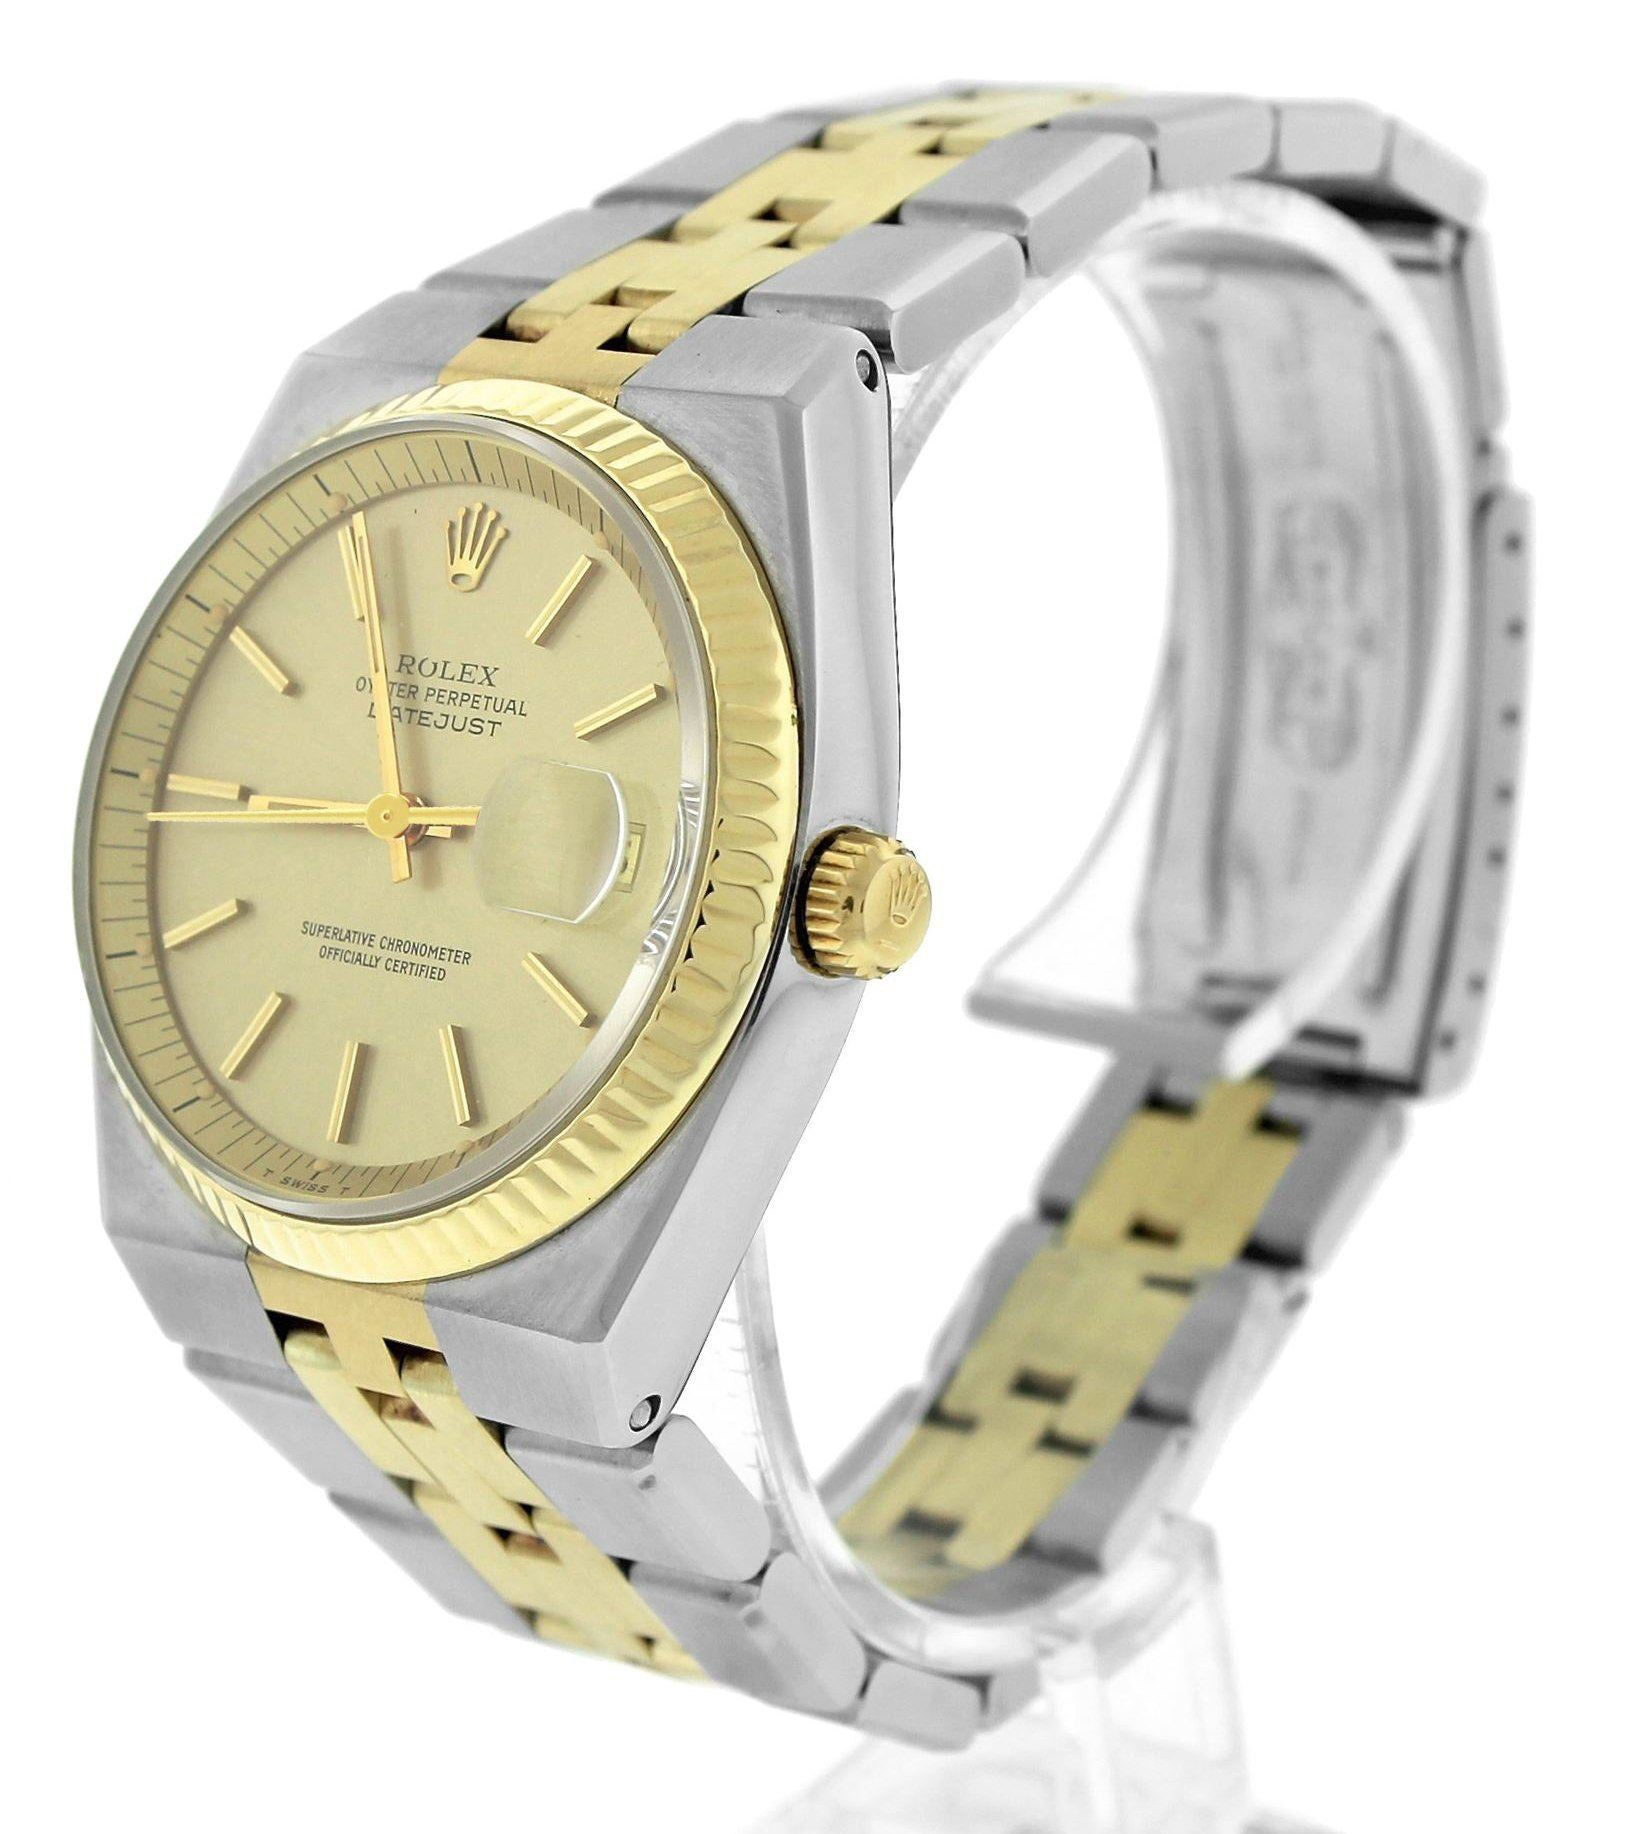 RARE Rolex DateJust Integral Automatic 36mm 1630 Two-Tone Gold Champagne Jubilee